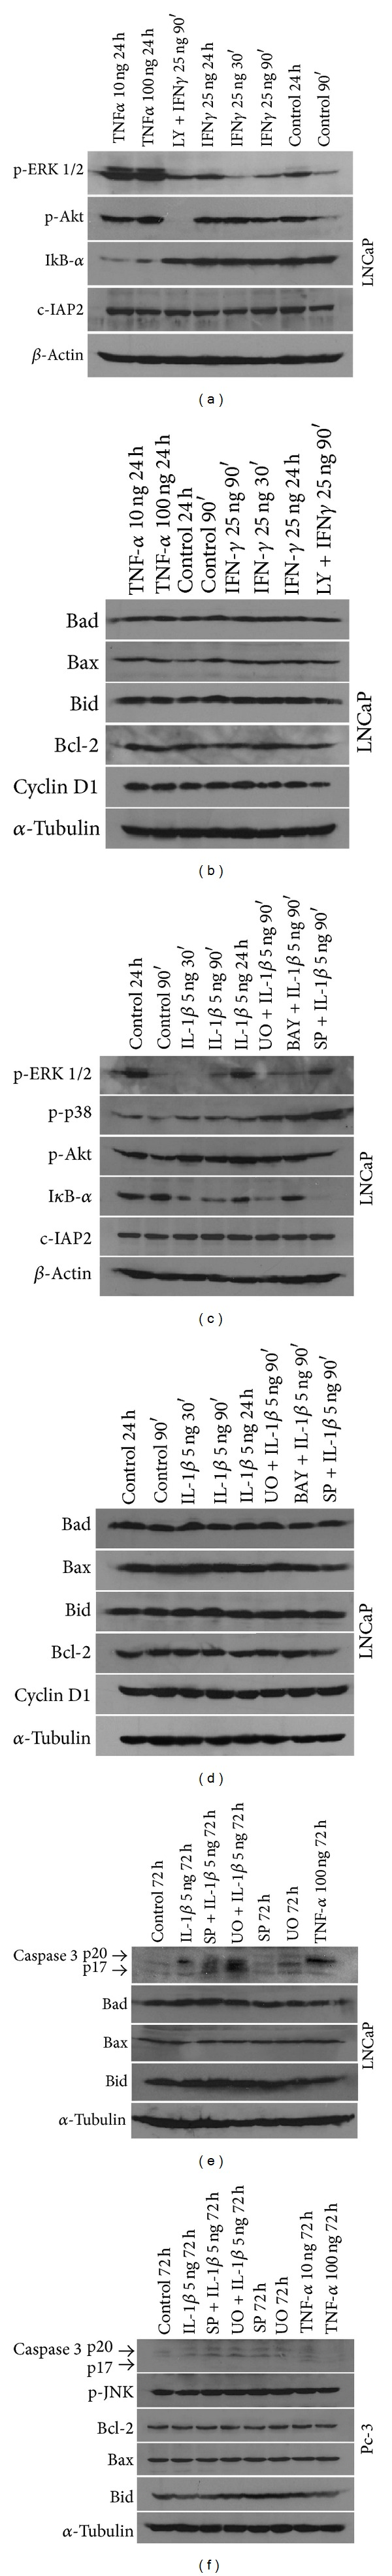 Western blot analysis of LNCaP protein expression. (a) and (b) LNCaP cells were treated with TNF- α (10 and 100 ng/mL) for 24 h or IFN- γ (25 ng/mL) for 30, 90 min, and 24 h or pretreated with LY-29004 (20 μ M) for 1 h and then treated with IFN- γ (25 ng/mL) for 90 min. Untreated cells for 90 min and 24 h were used as controls (ctrl). (c) and (d) LNCaP cells were treated with IL-1 β (5 ng/mL) for 30, 90 min, and 24 h or pretreated with UO126 (30 μ M), BAY-117082 (30 μ M), or SP600125 (30 μ M) for 1 h and then treated with IL-1 β (5 ng/mL) for 90 min. Untreated cells for 90 min and 24 h were used as controls (ctrl). (e) and (f) LNCaP and PC-3 cells were treated with IL-1 β (5 ng/mL) or TNF- α (10 and 100 ng/mL) or SP600125 (30 μ M) or UO126 (30 μ M) for 72 h, or pretreated with SP600125 (30 μ M) or UO126 (30 μ M) for 1 h and then treated with IL-1 β (5 ng/mL) for 72 h. Untreated cells for 72 h were used as controls (ctrl). Cell extracts were resolved by SDS-PAGE and analyzed by western blot with antibodies against Bid, Bad, Bax, Bcl-2, Cyclin D1, p-ERK 1/2, p-p38, p-Akt, I κ B- α , c-IAP2, and caspase 3. Reprobing with antibody against α -tubulin or β -actin was used as a loading and transfer marker.